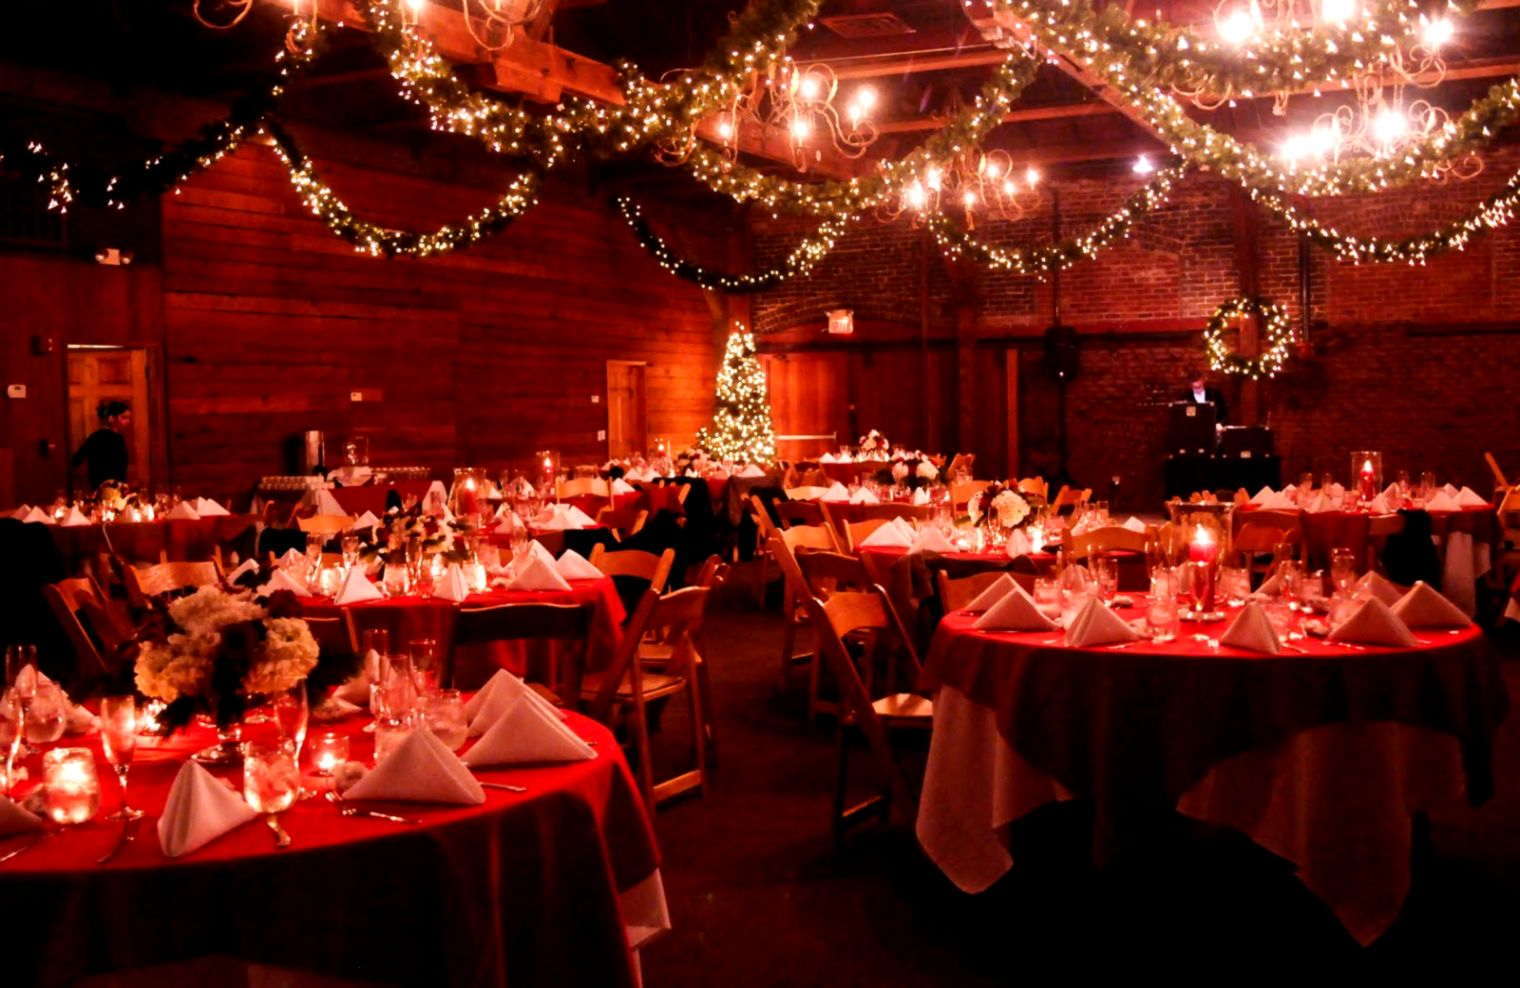 Christmas Wedding Decorations For Reception On Decorations With